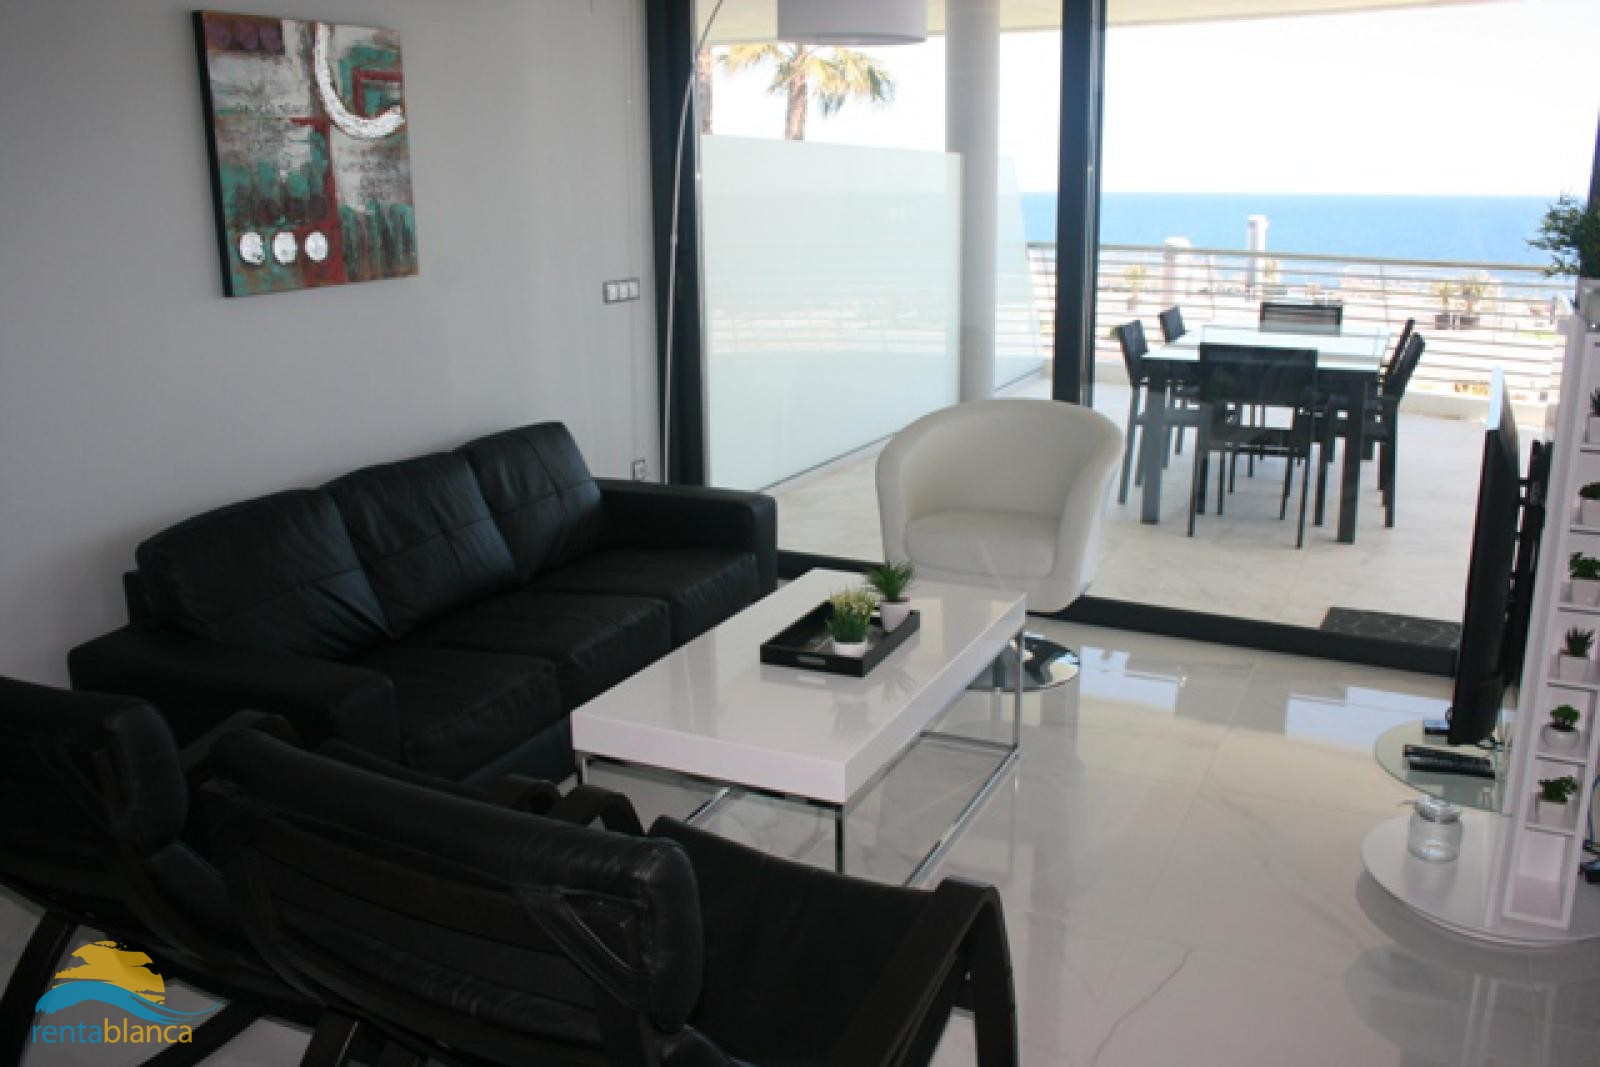 Beach apartment Infinity View - Rentablanca